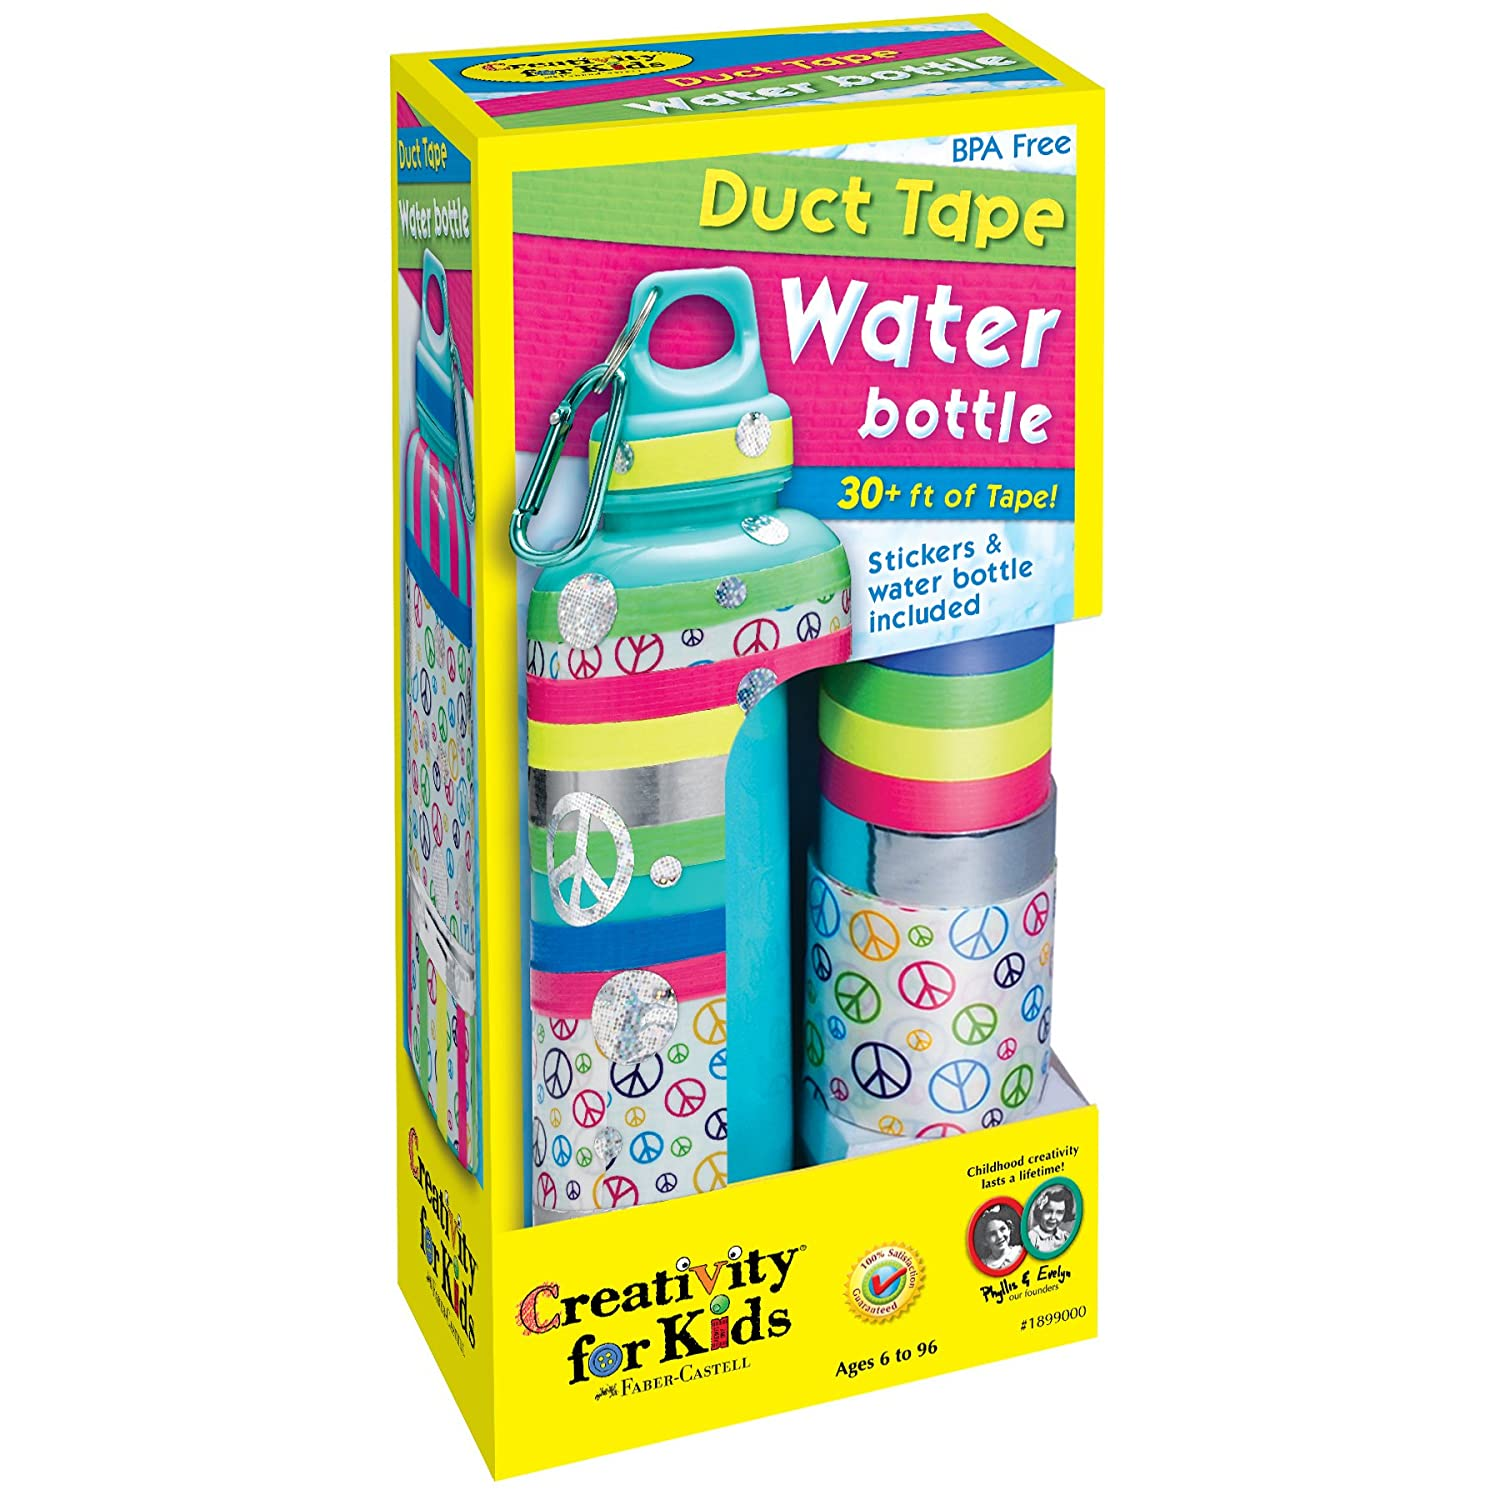 Creativity For Kids Duct Tape Water Bottle Decorate 1 Bpa Free Reusable Water Bottle